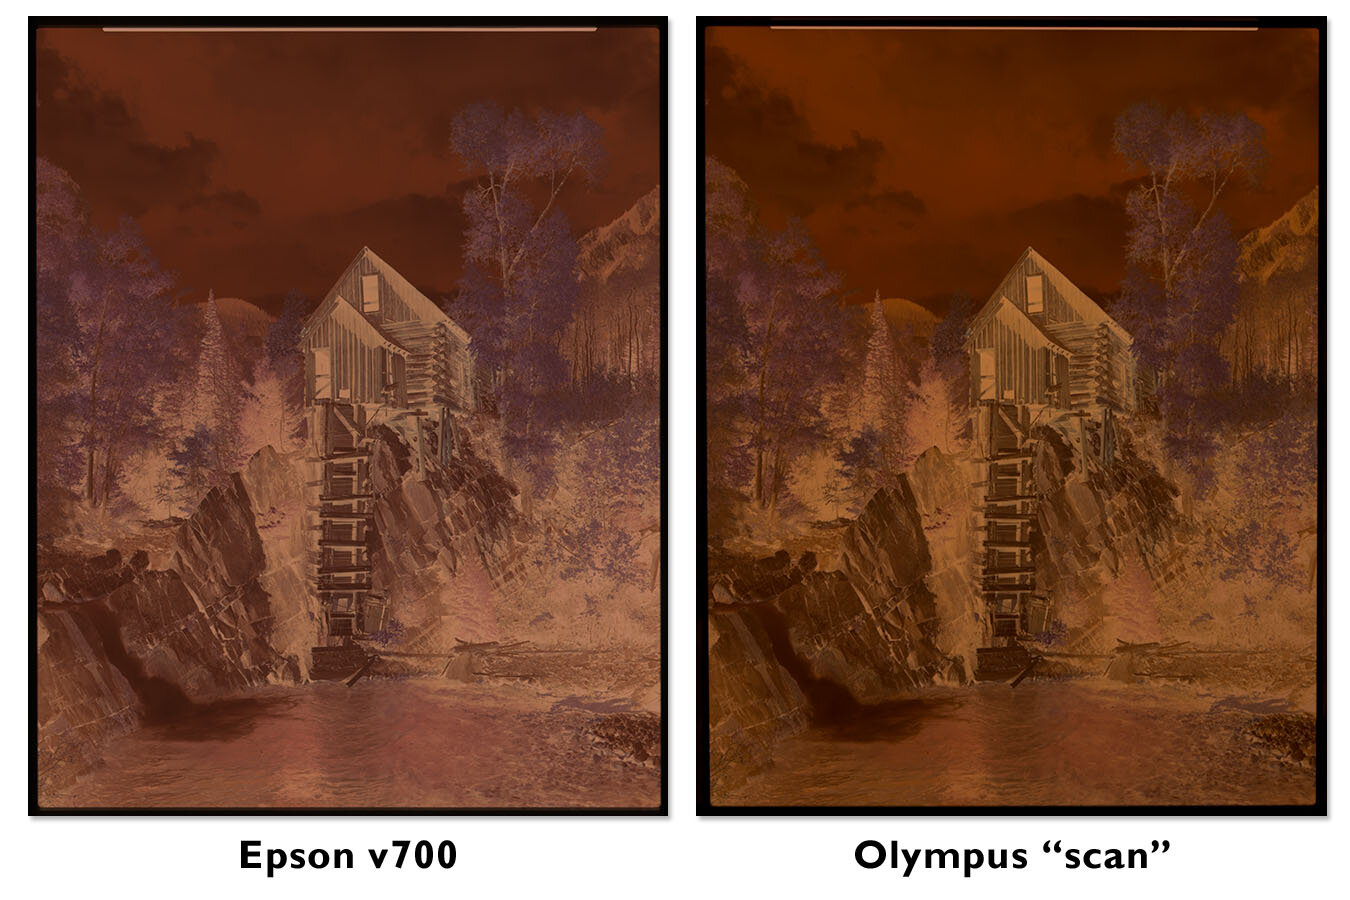 Comparison of negative film scans made using the Epson v700 and a mirrorless camera